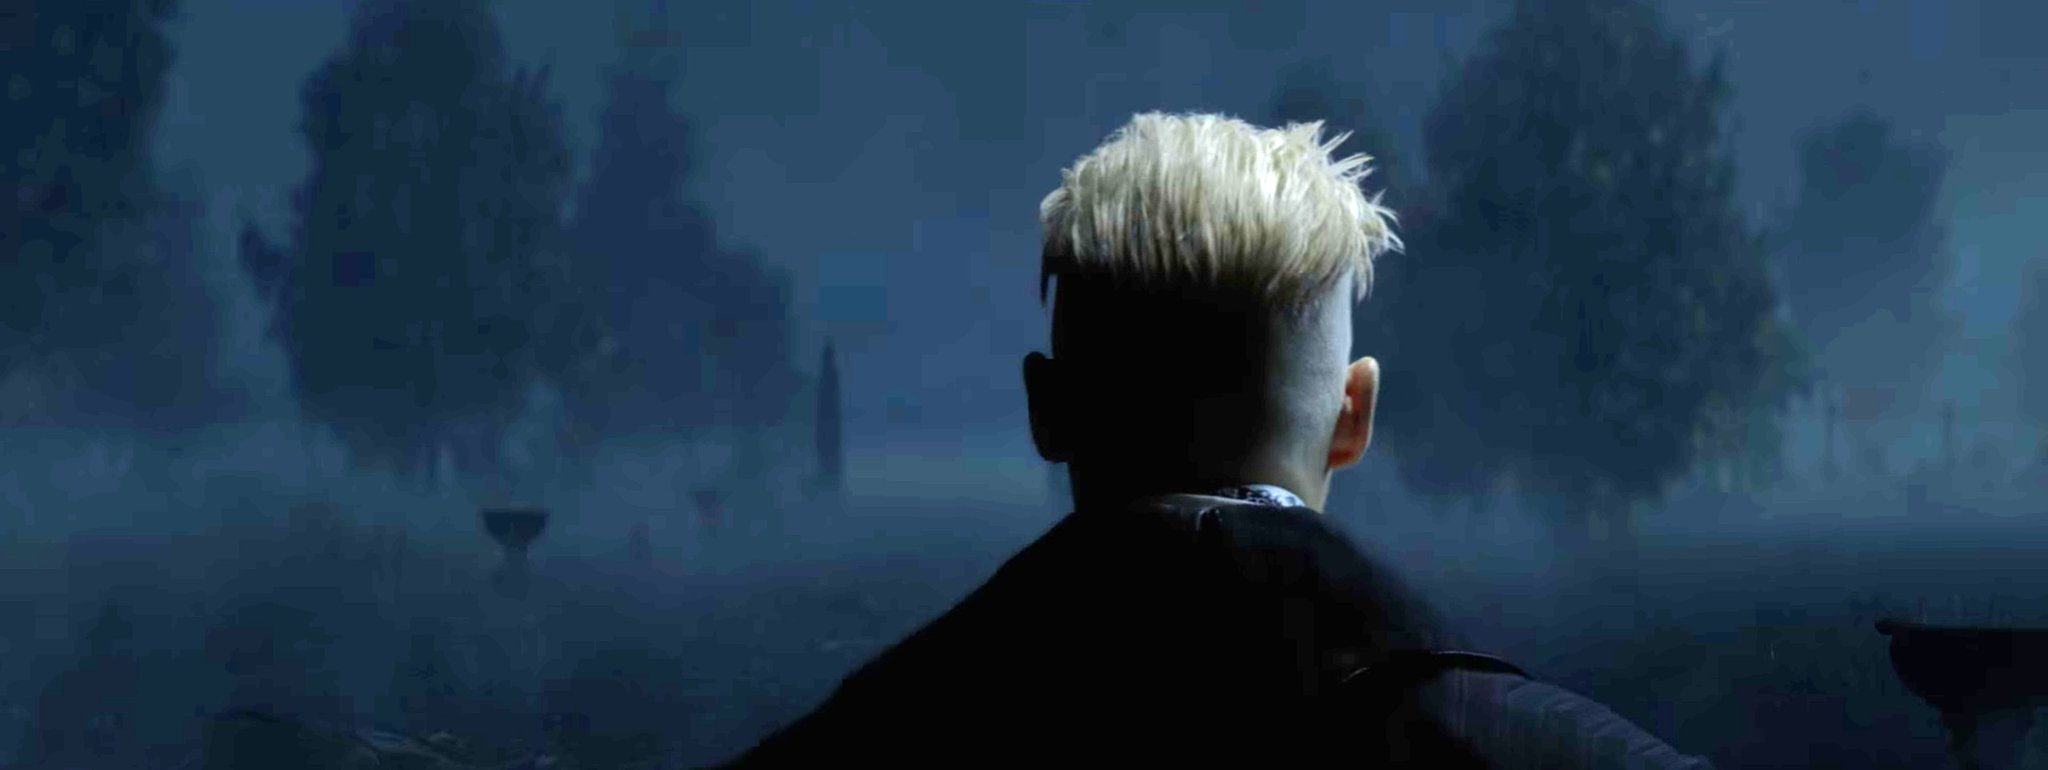 johnny-depp-grindelwald